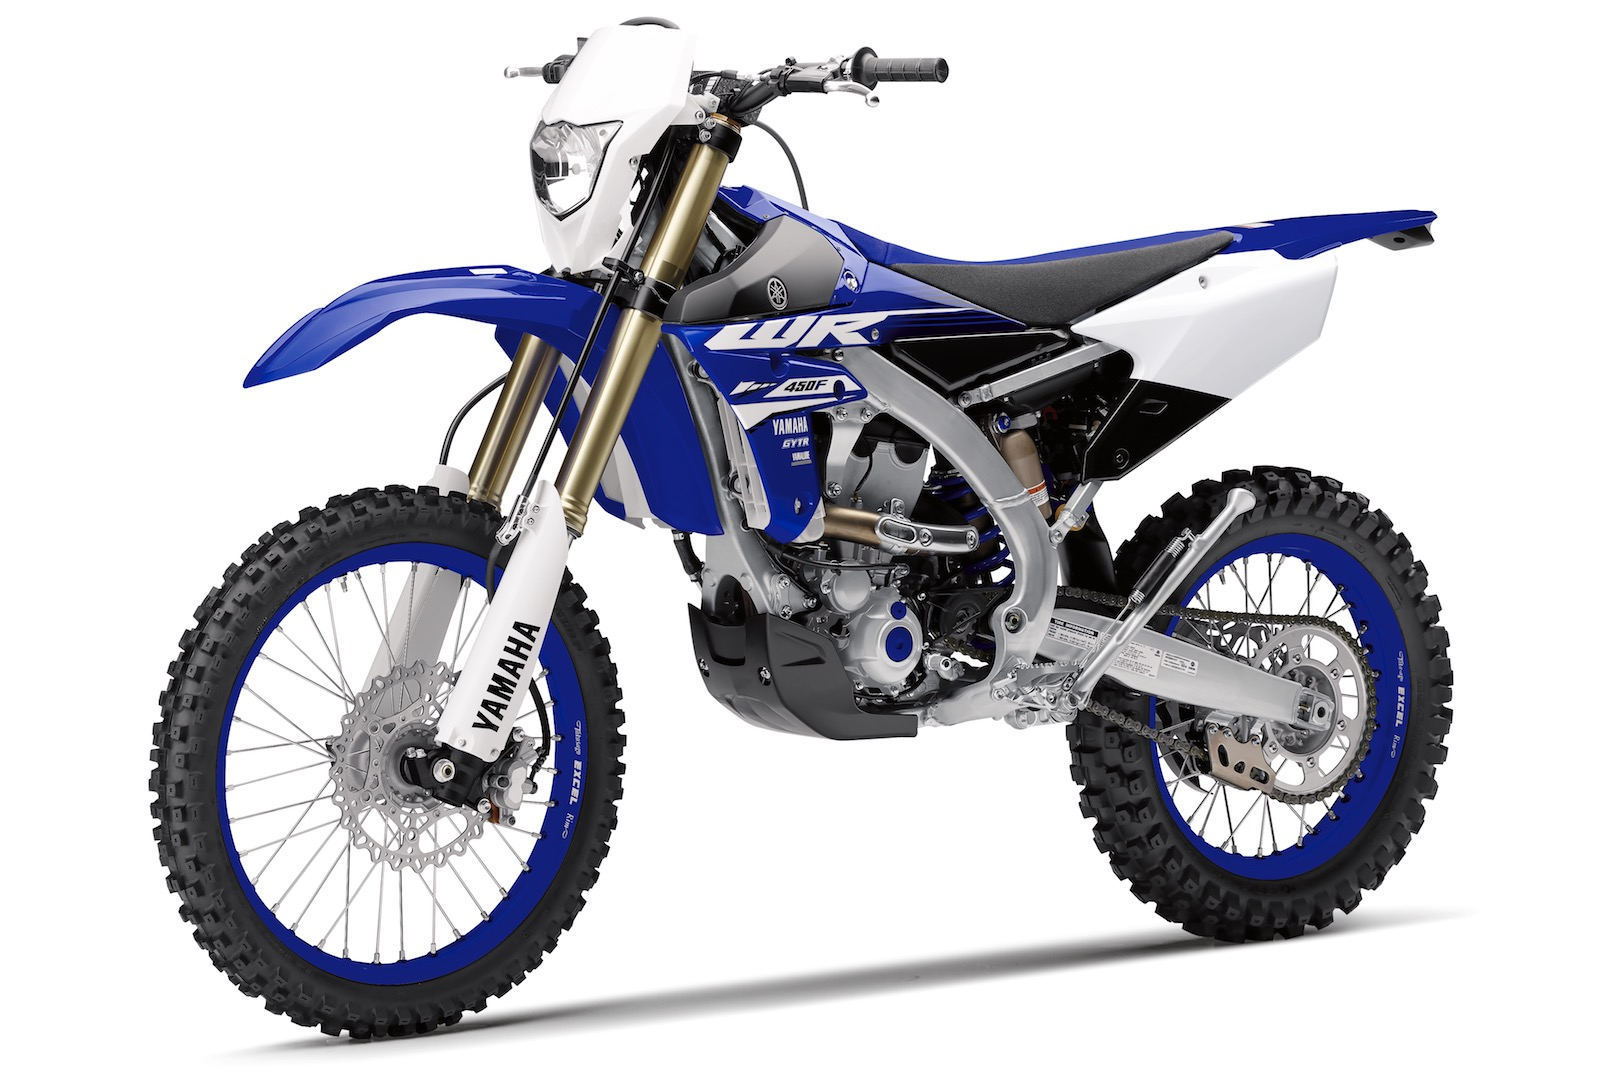 2018 yamaha wr450f first look 6 fast facts